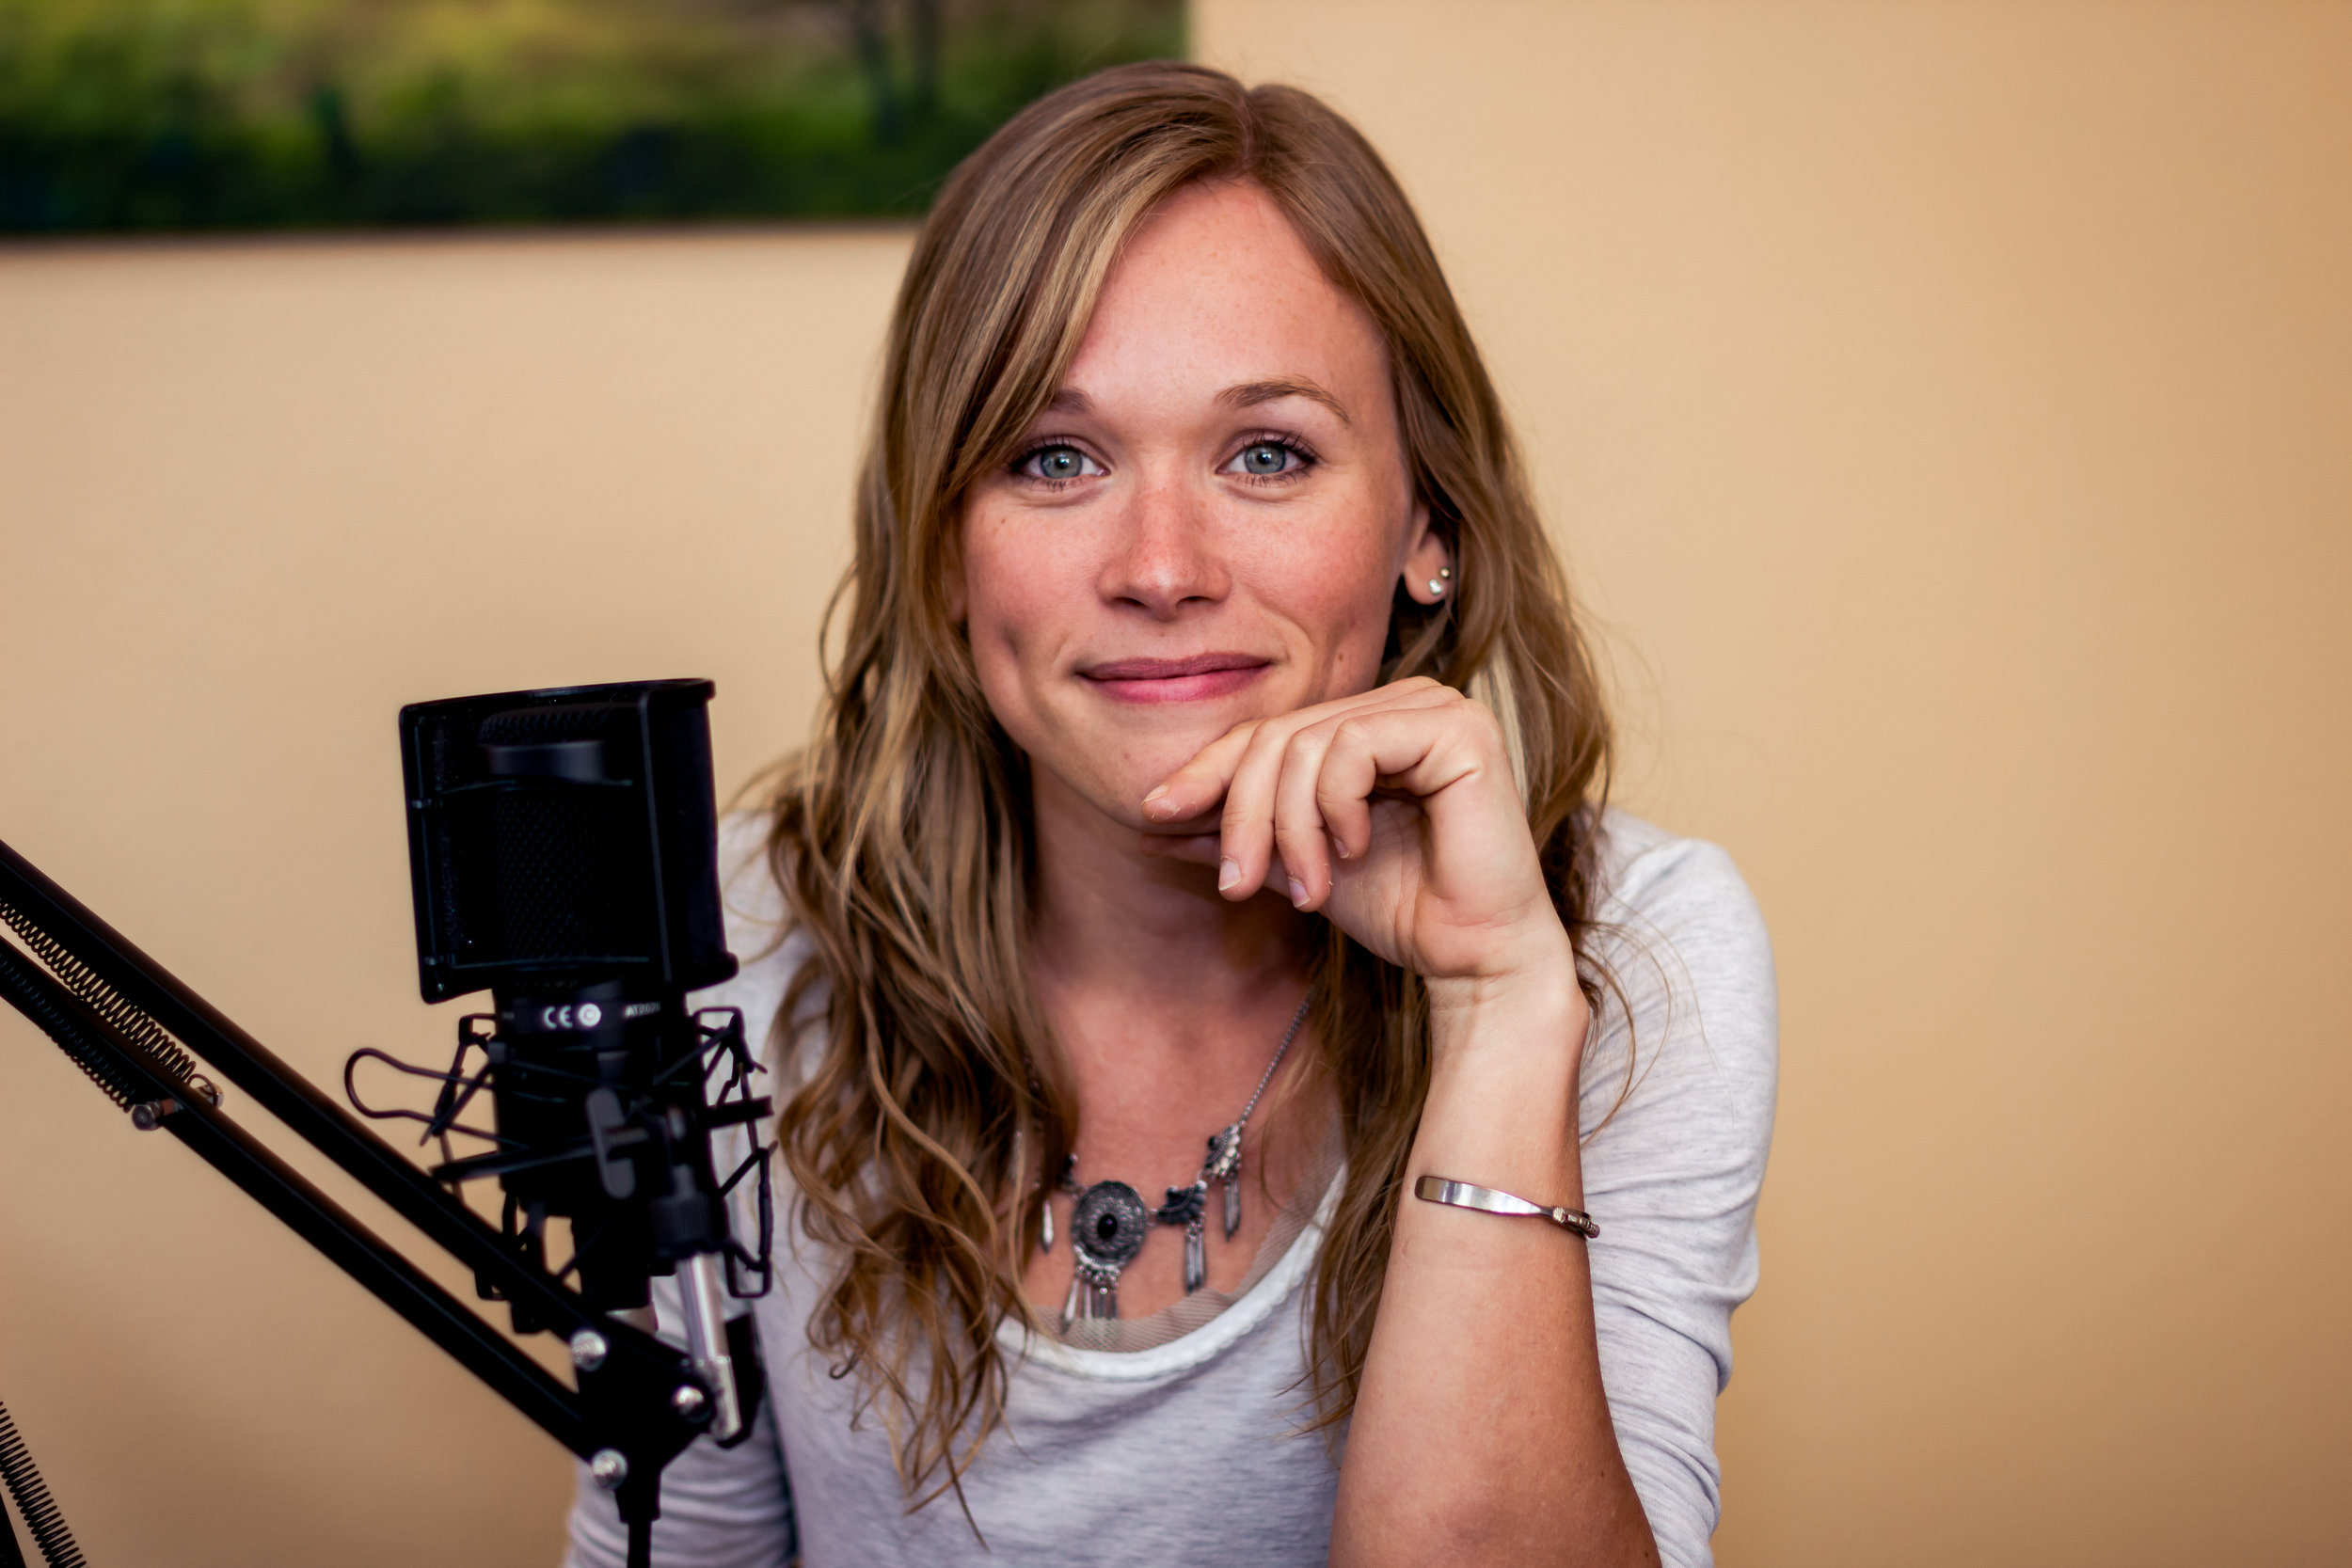 Sanni McCandless - Cofounder of the Outwild, Climber, lifestyle hacker, fulfillment coach.